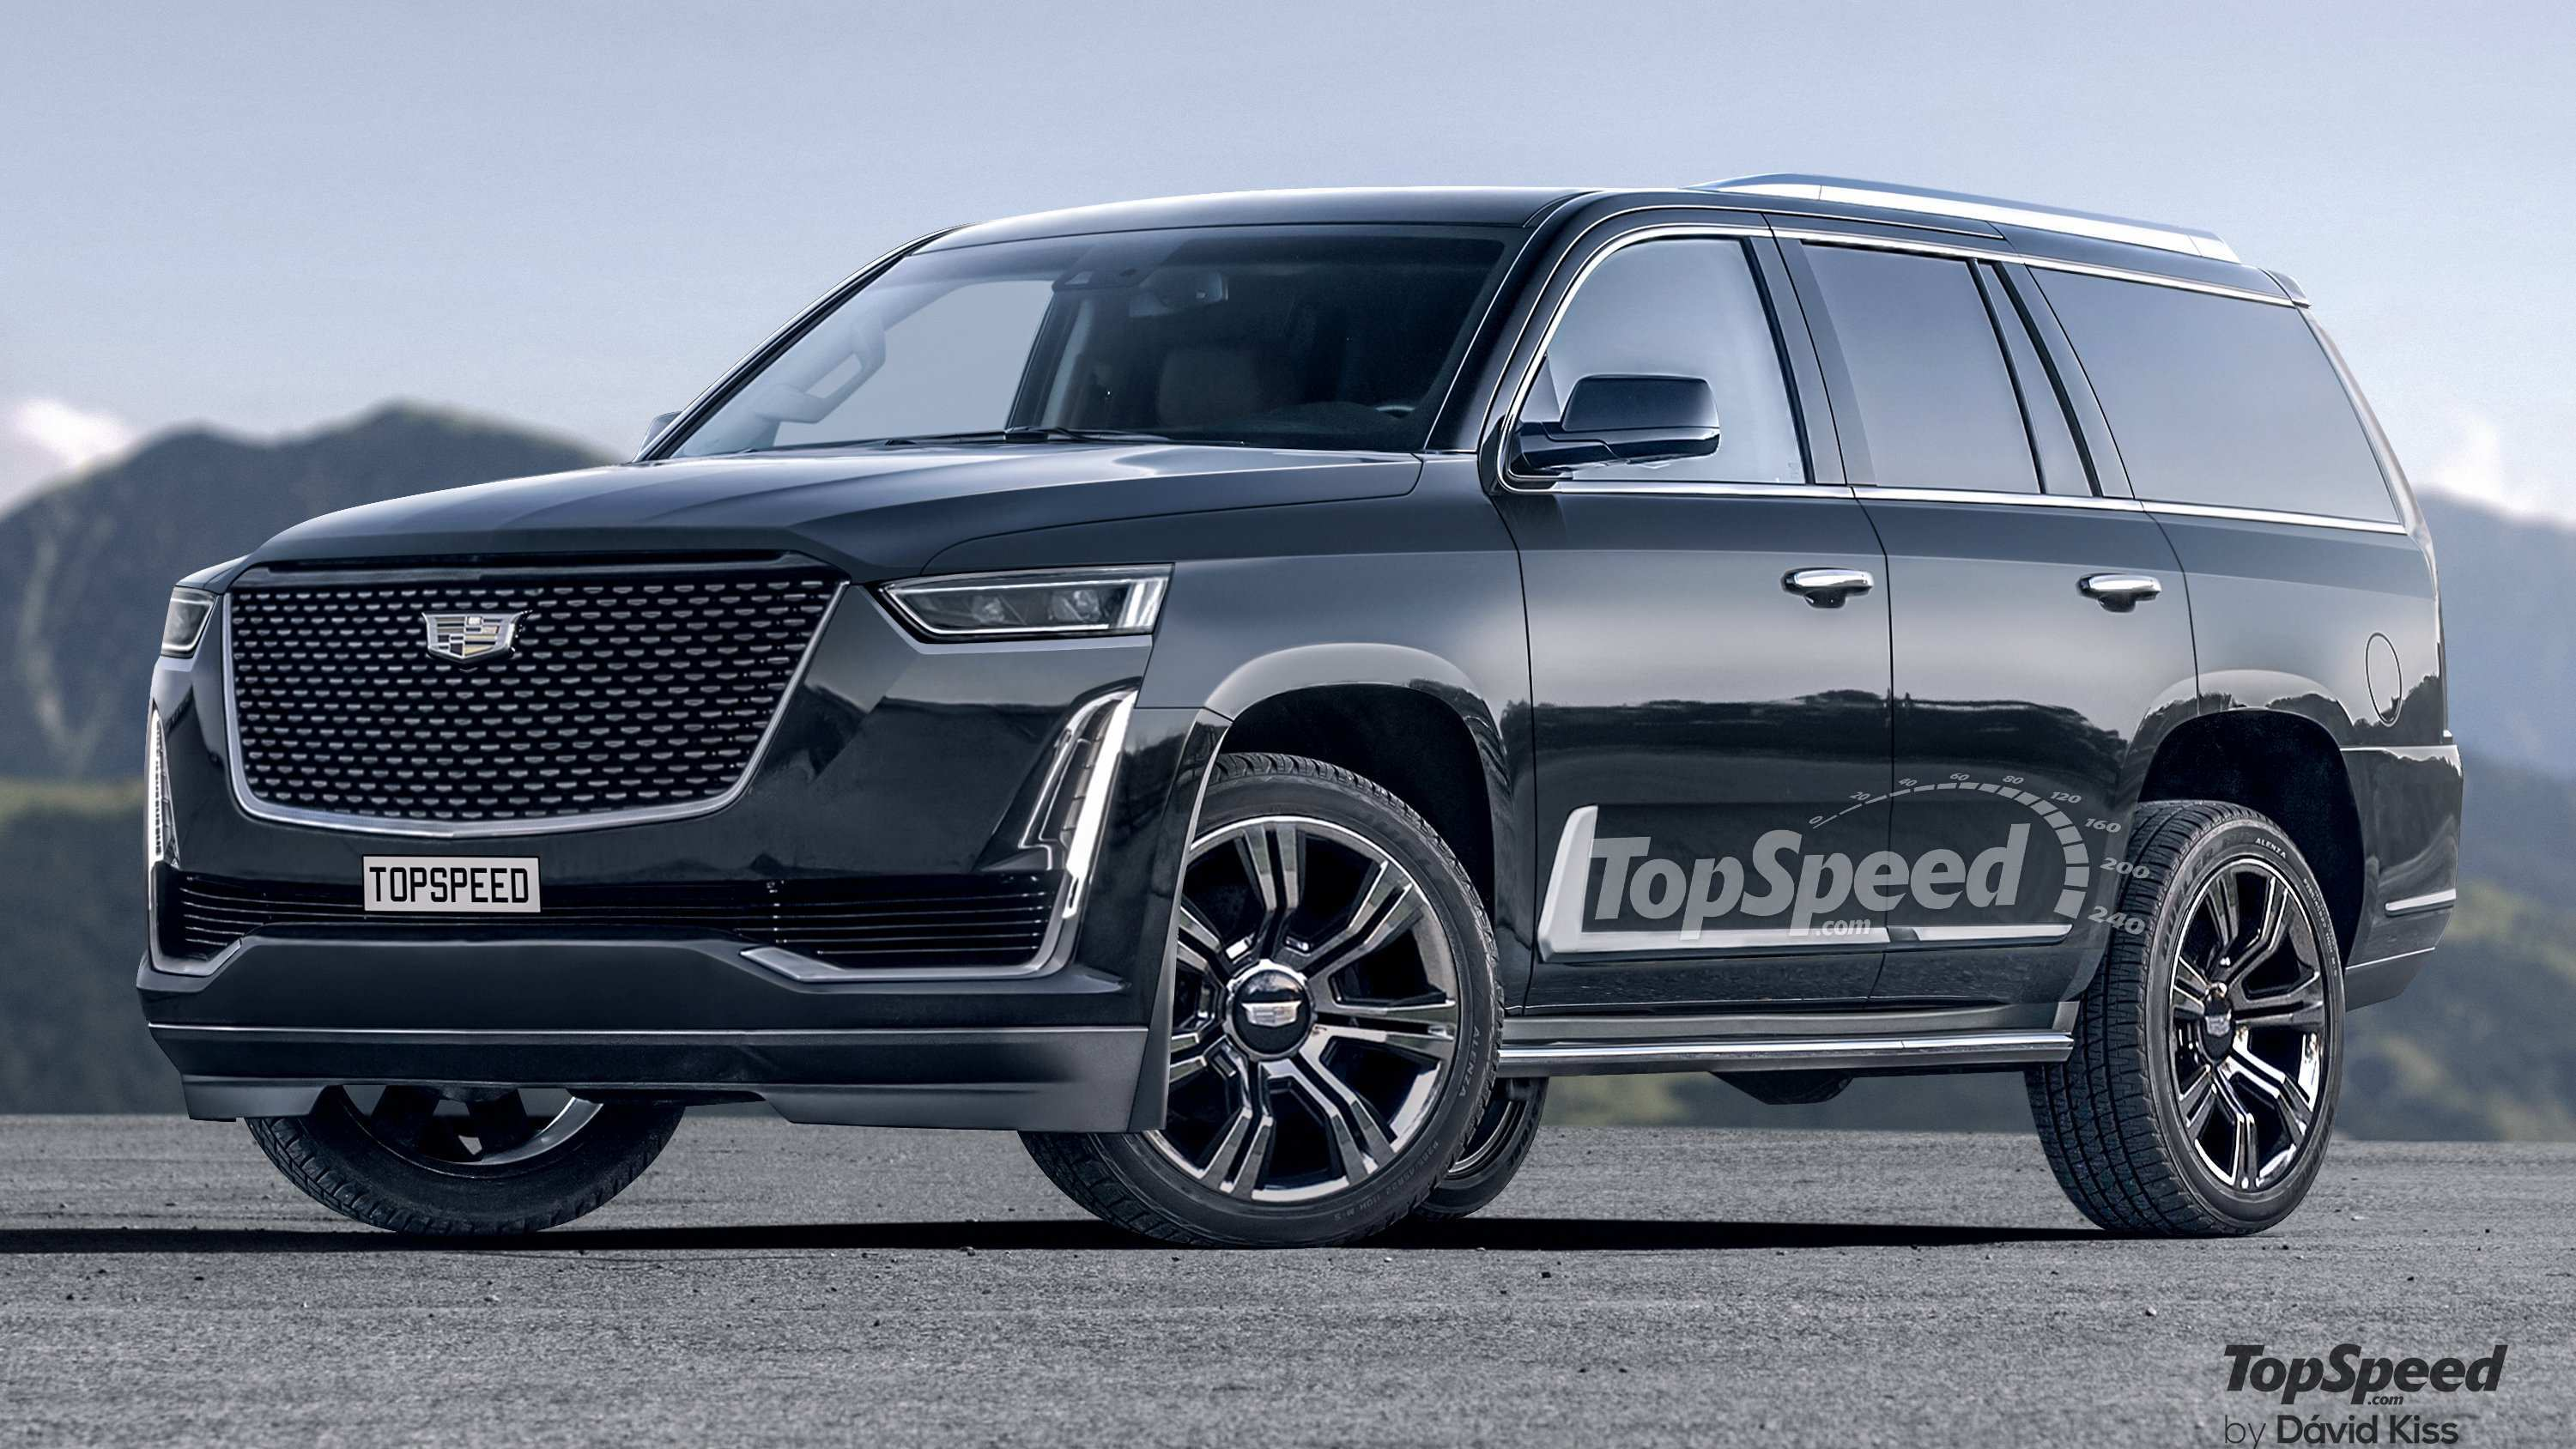 82 The Cadillac Vehicles 2020 Configurations by Cadillac Vehicles 2020